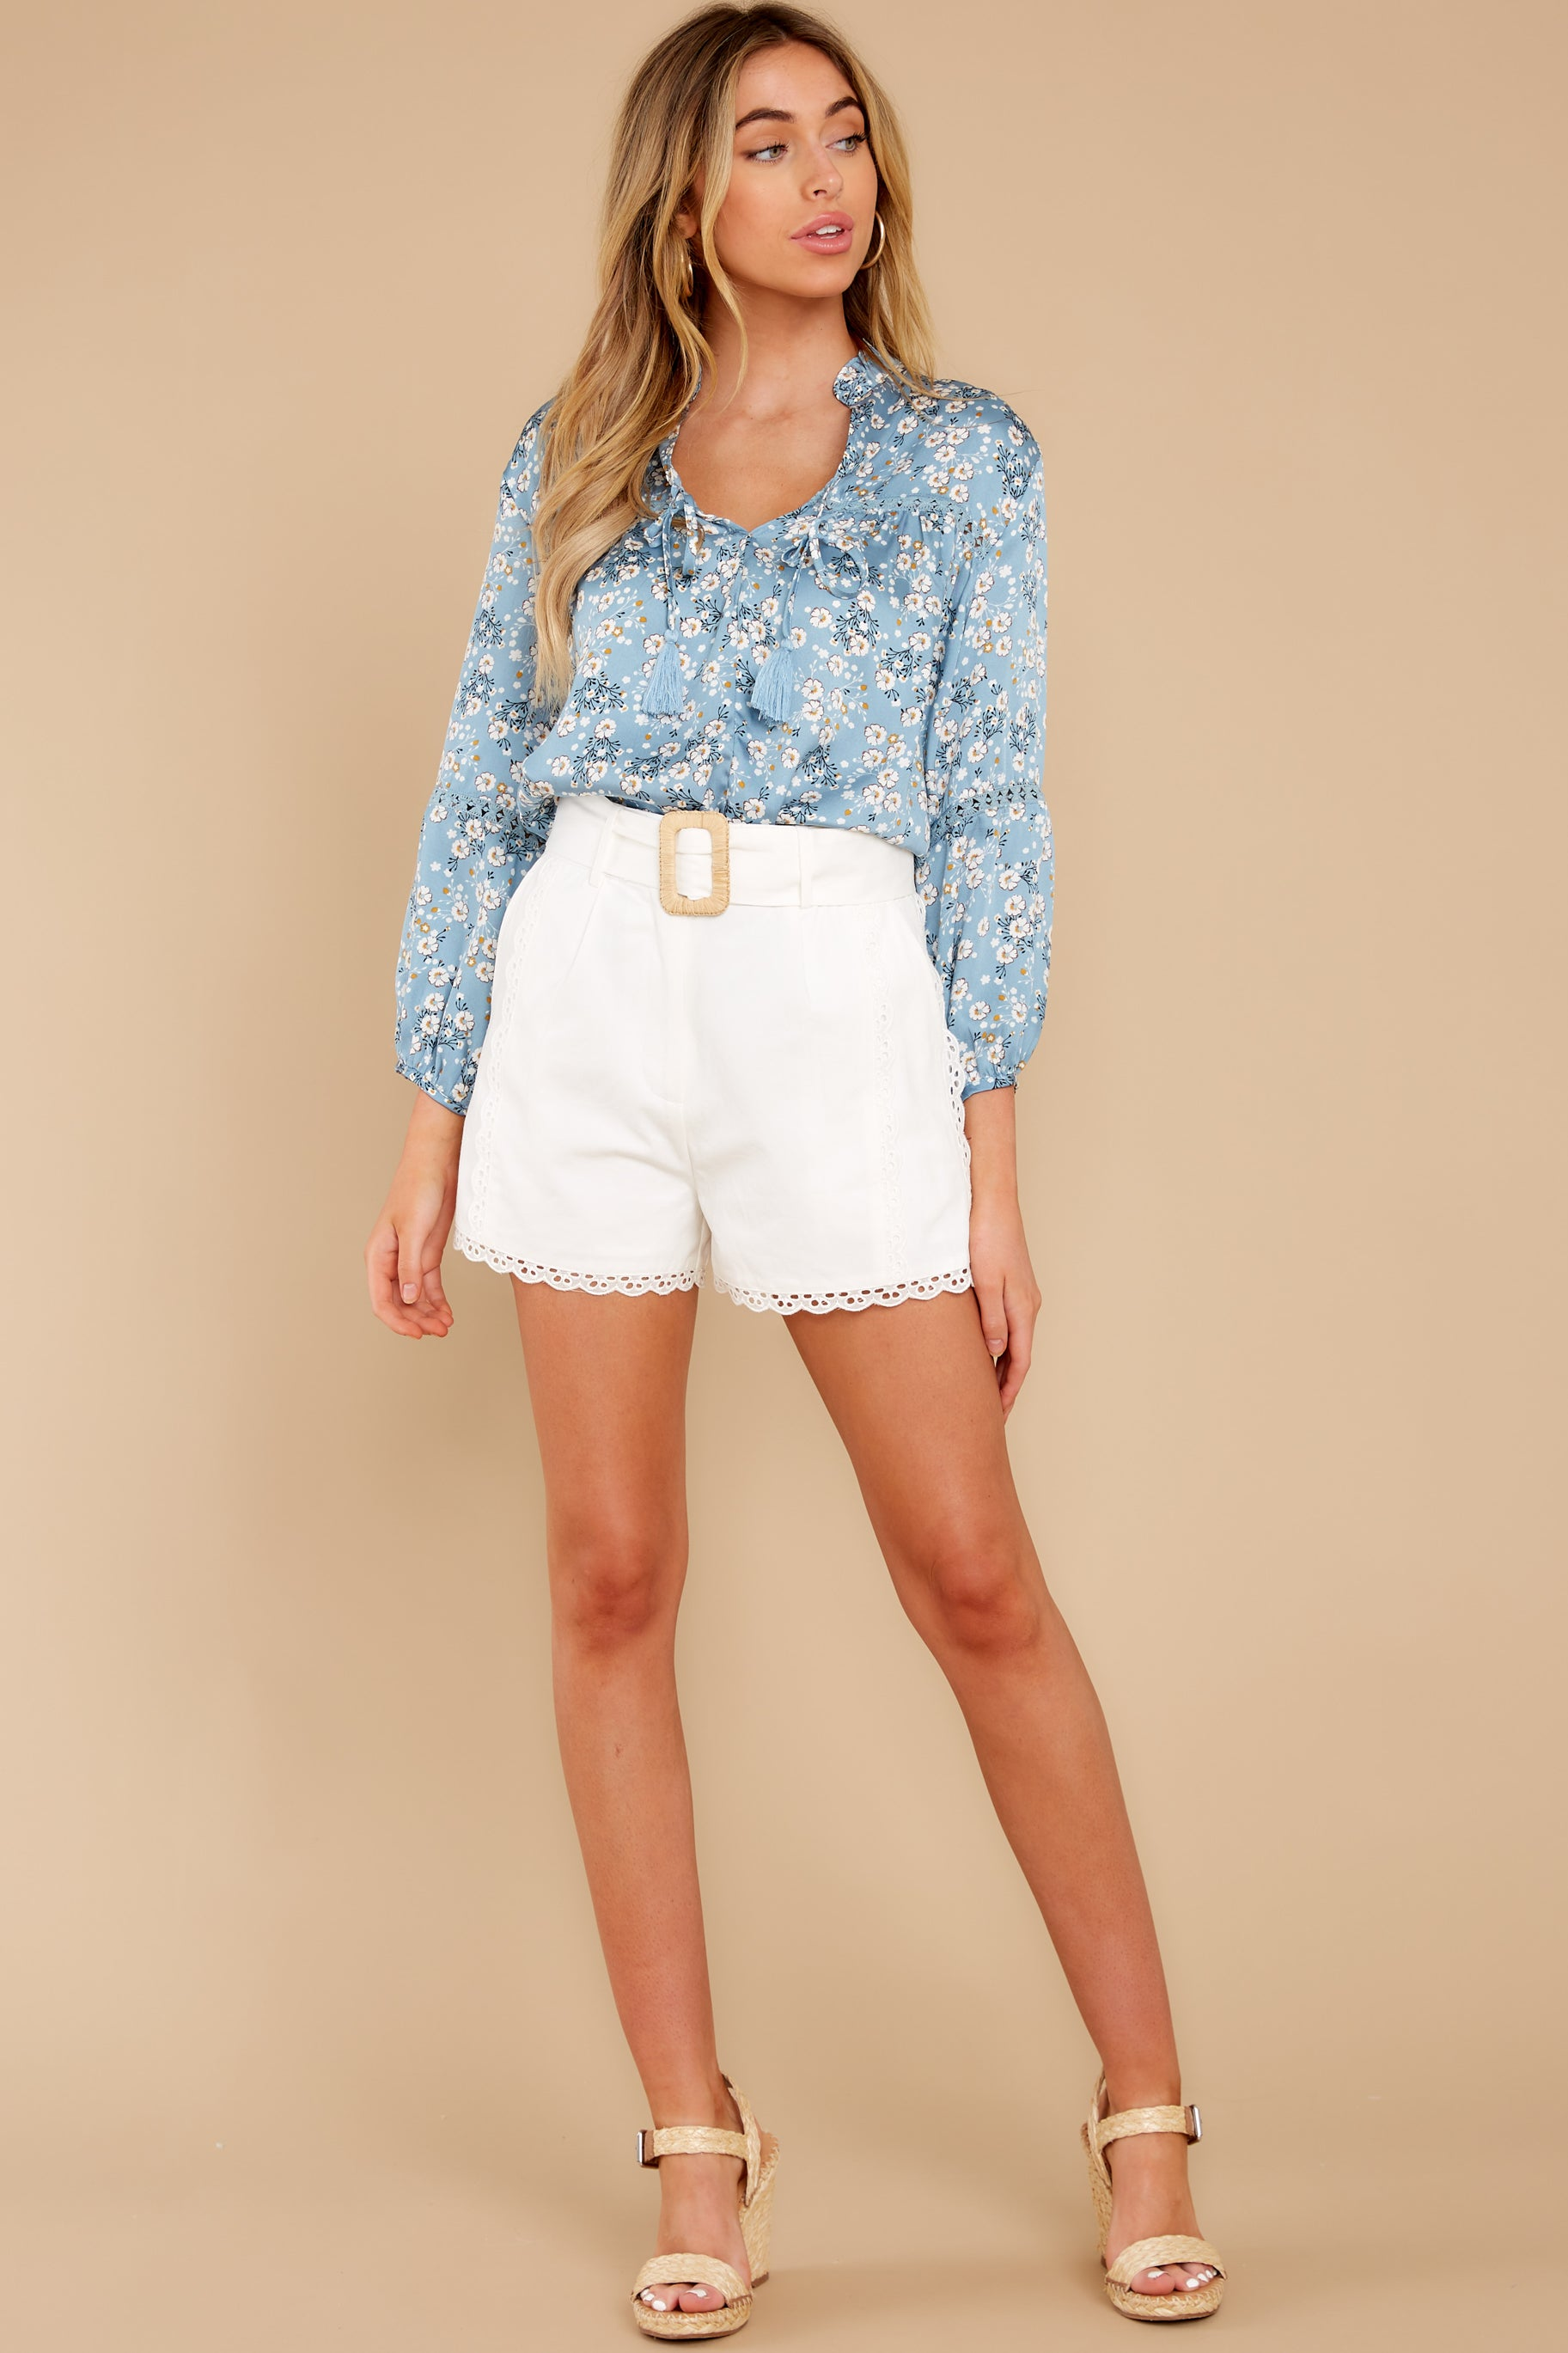 4 Little Cutie Light Blue Floral Print Top at reddress.com